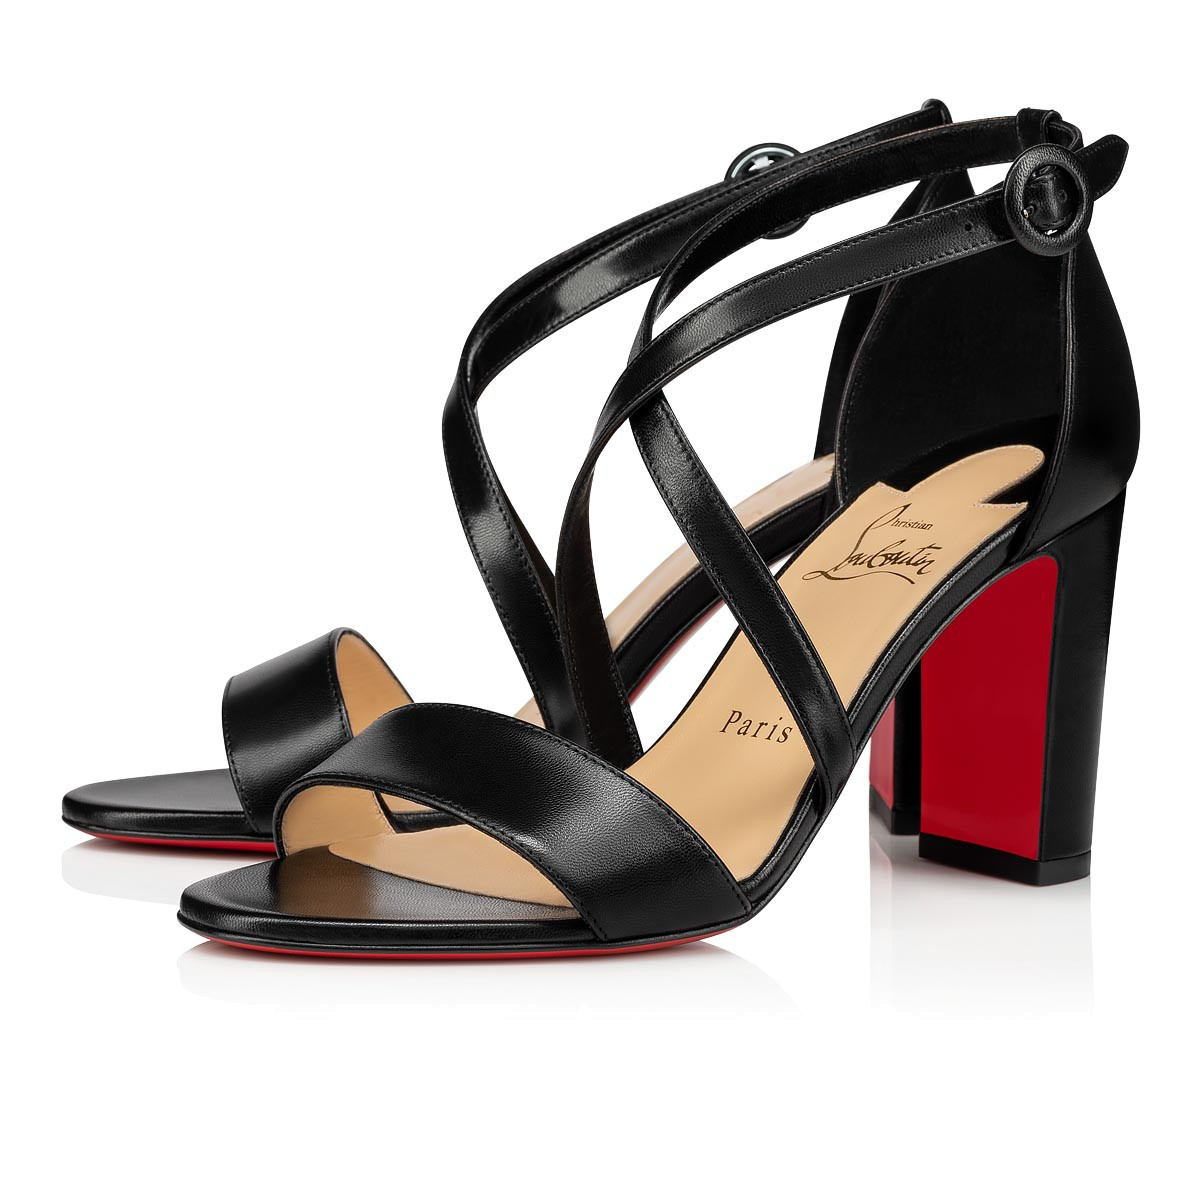 Shoes - Loubi Bee - Christian Louboutin